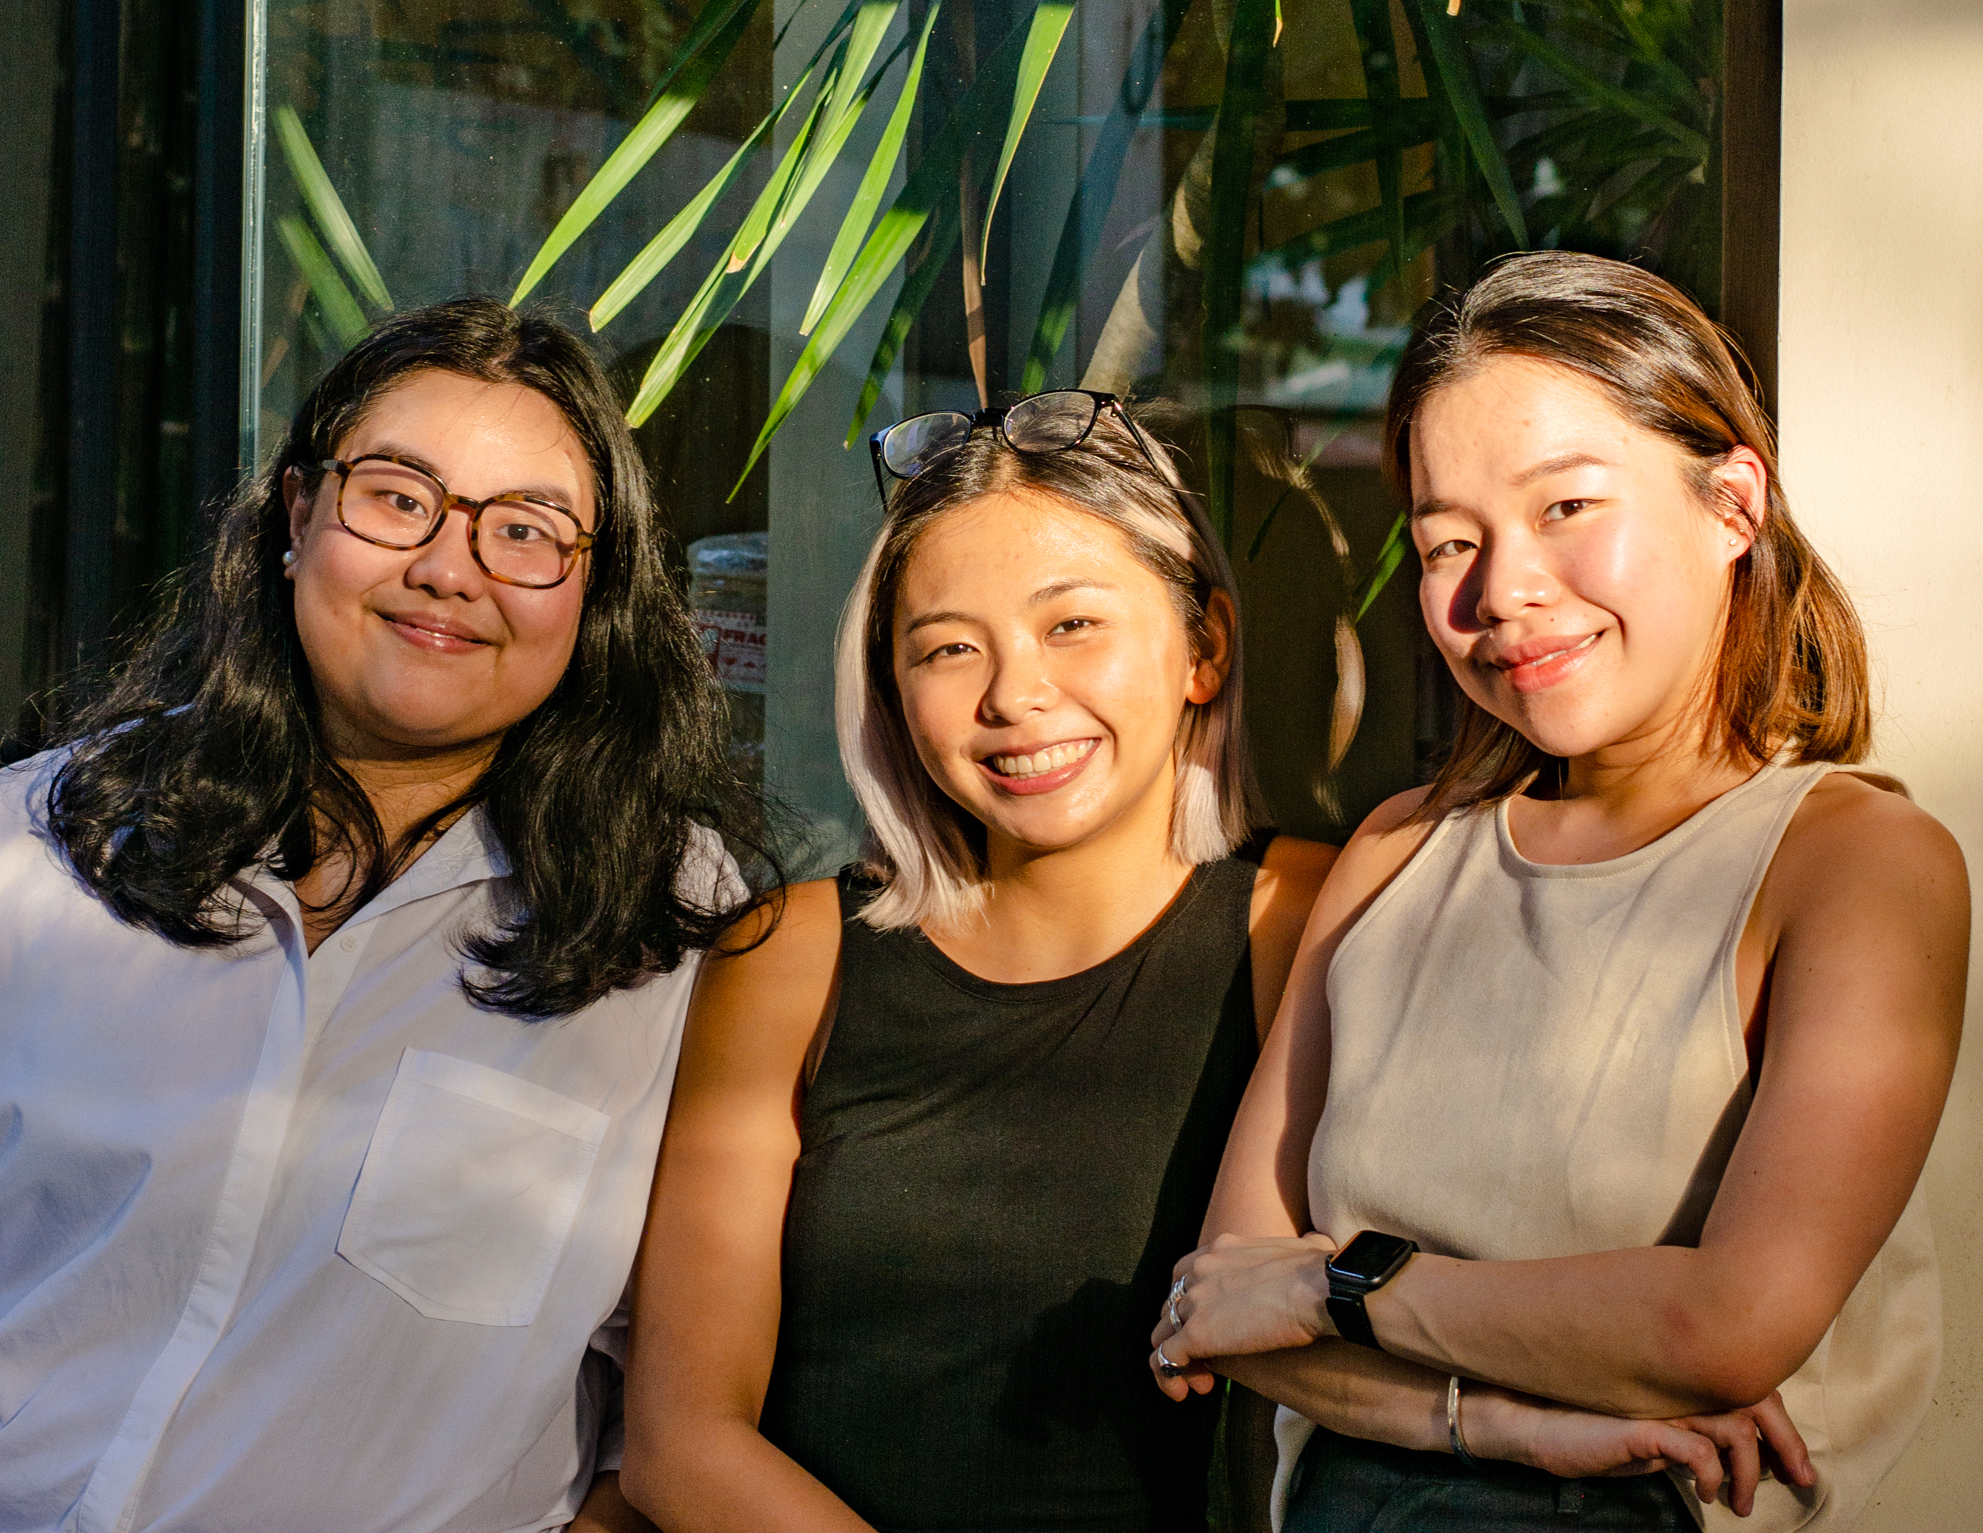 Meet the three women behind MadEats who recently secured US$125,000 in funding from Silicon Valley-based startup accelerator Y Combinator